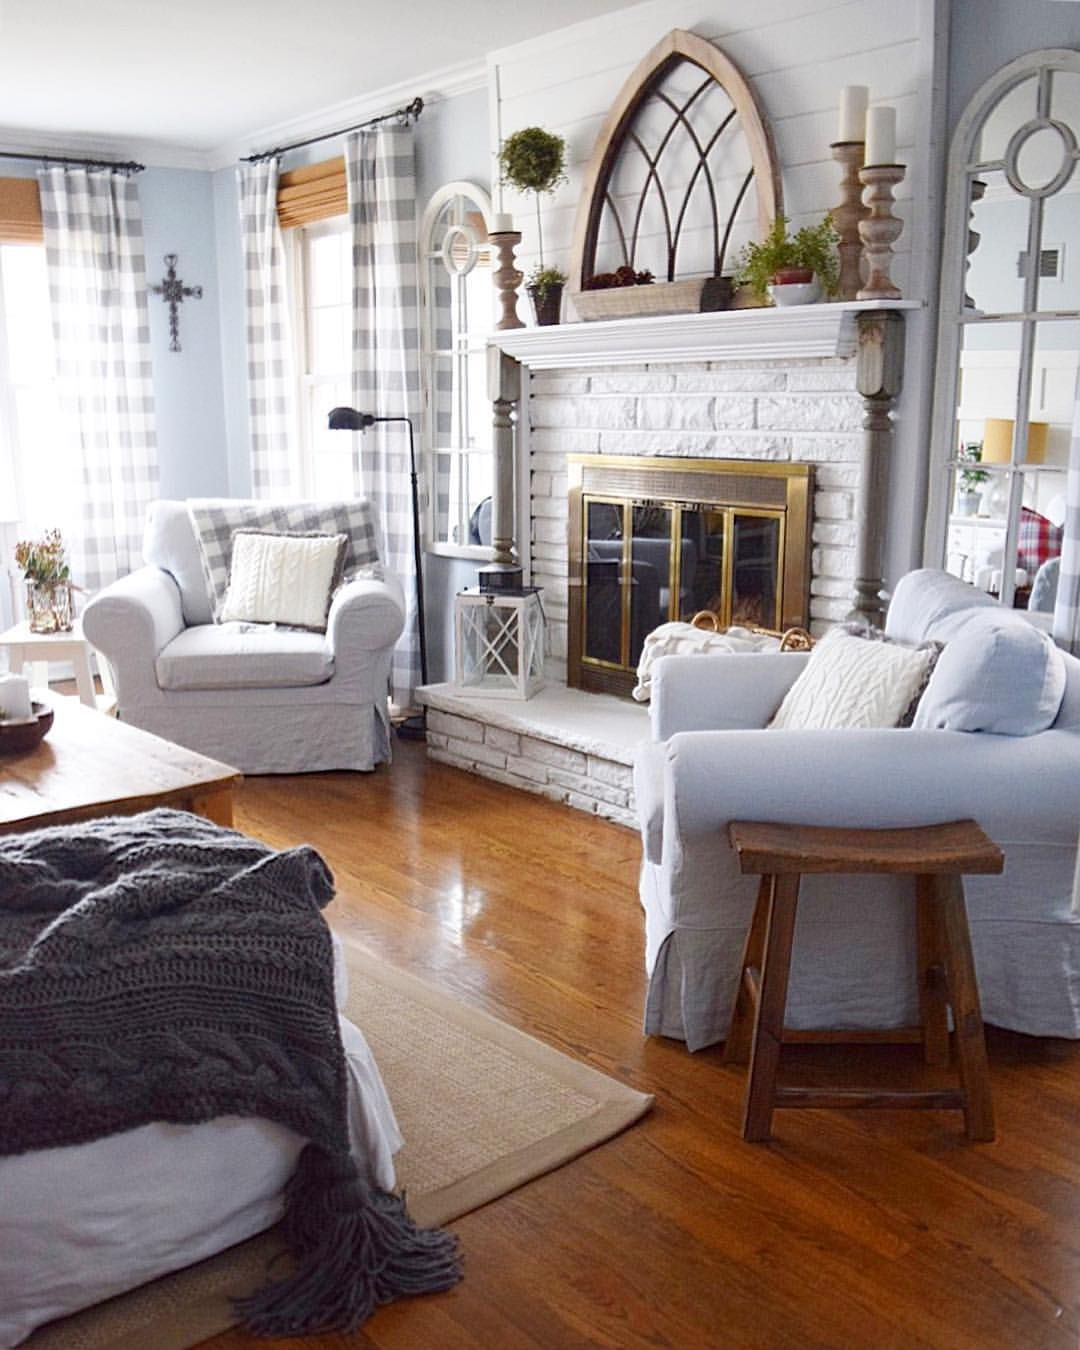 40 Cozy Small Living Room Ideas For English Cottage: Pin By Jessica Weimer On Family/ Living Room Ideas